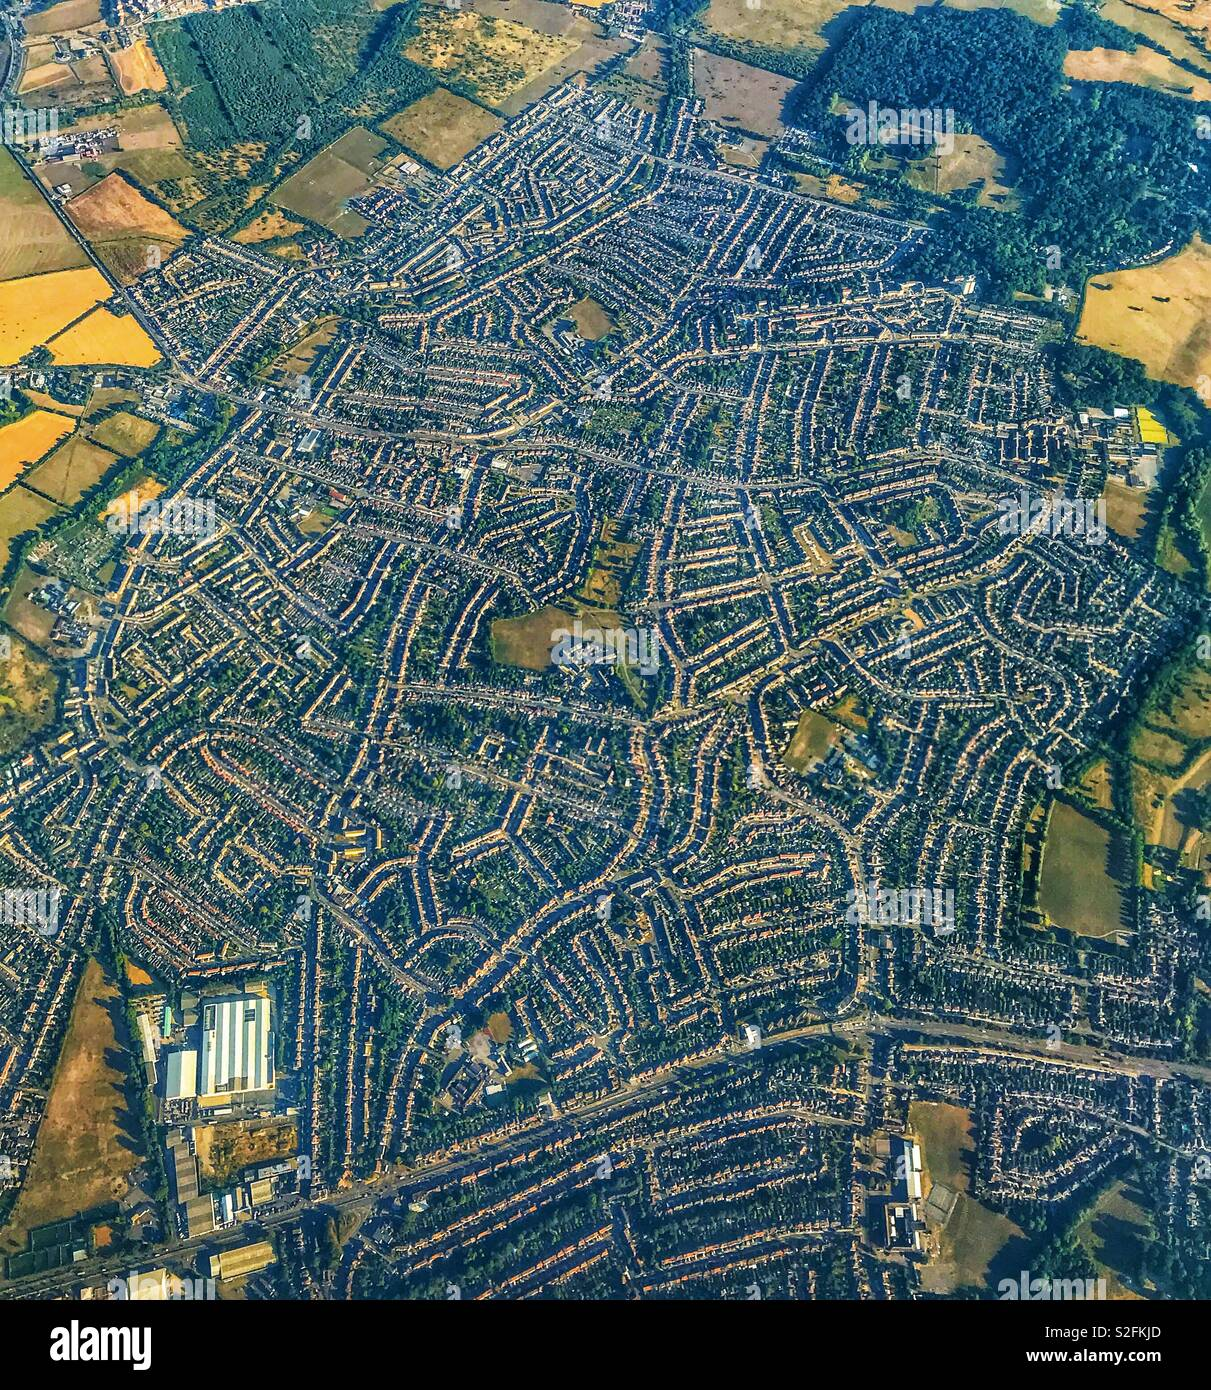 Aerial view of a large housing estate on the outskirts of London - Stock Image